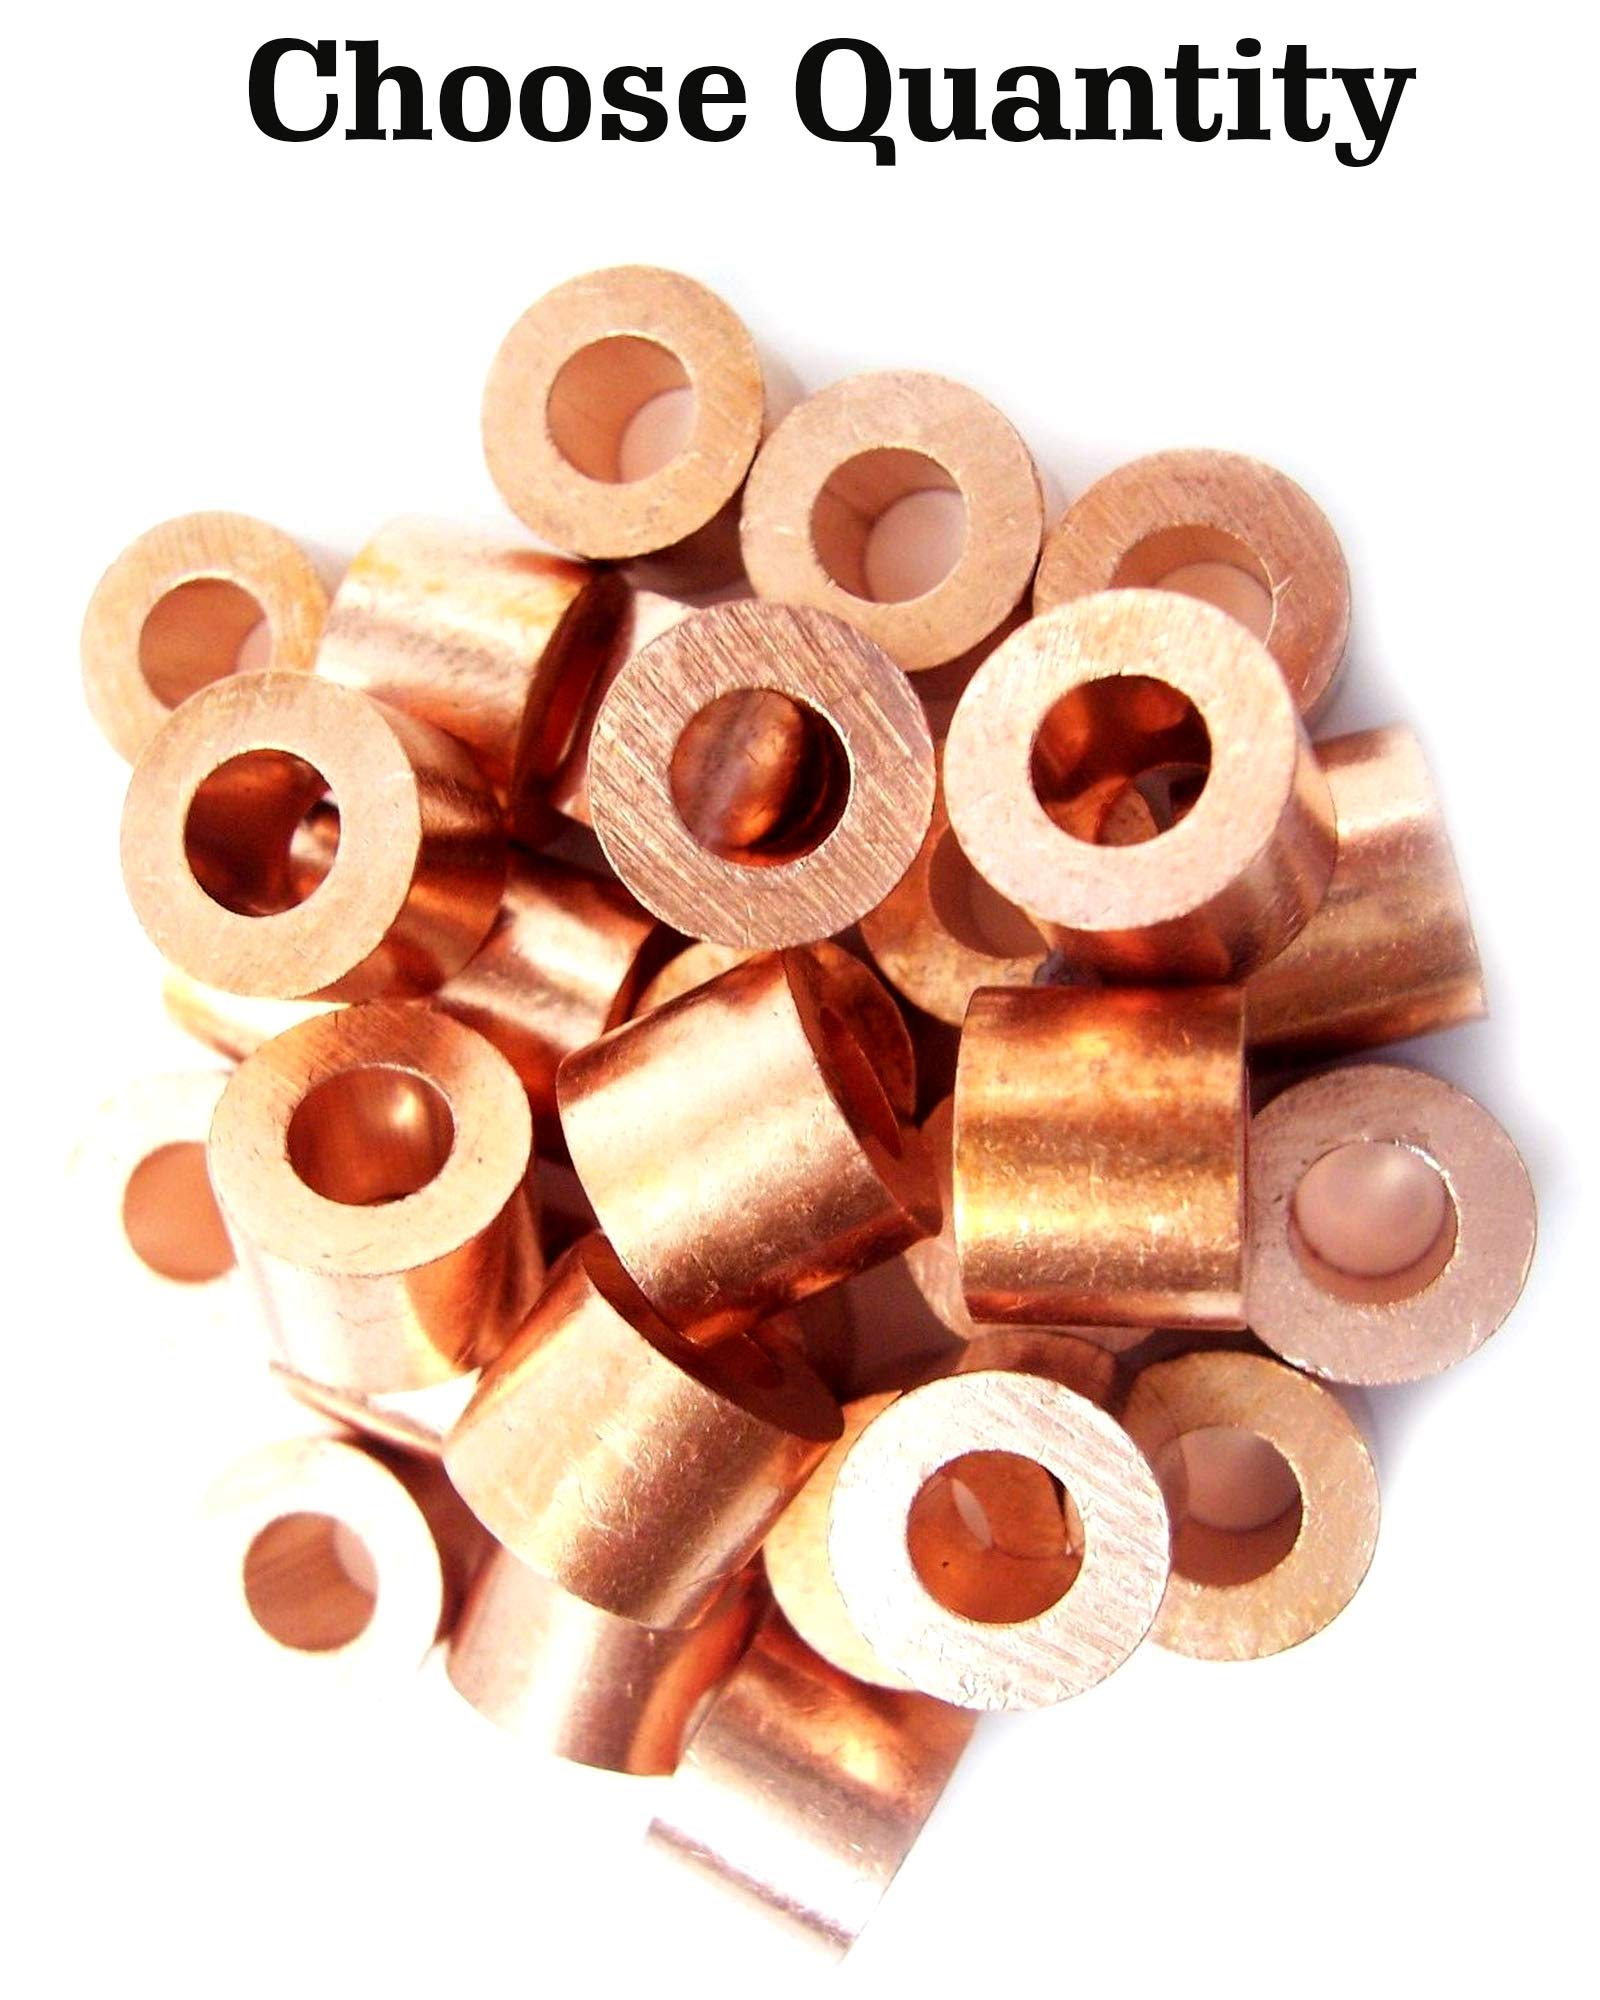 Copper Swage Stop for 3/16'' Wire Rope Cable - Copper Cable Stop Sleeve for 3/16 Inch Wire Rope Swage Clip Copper Cable Crimp Sleeves Cable Stops 3/16'' Copper Swage Sleeves (50)